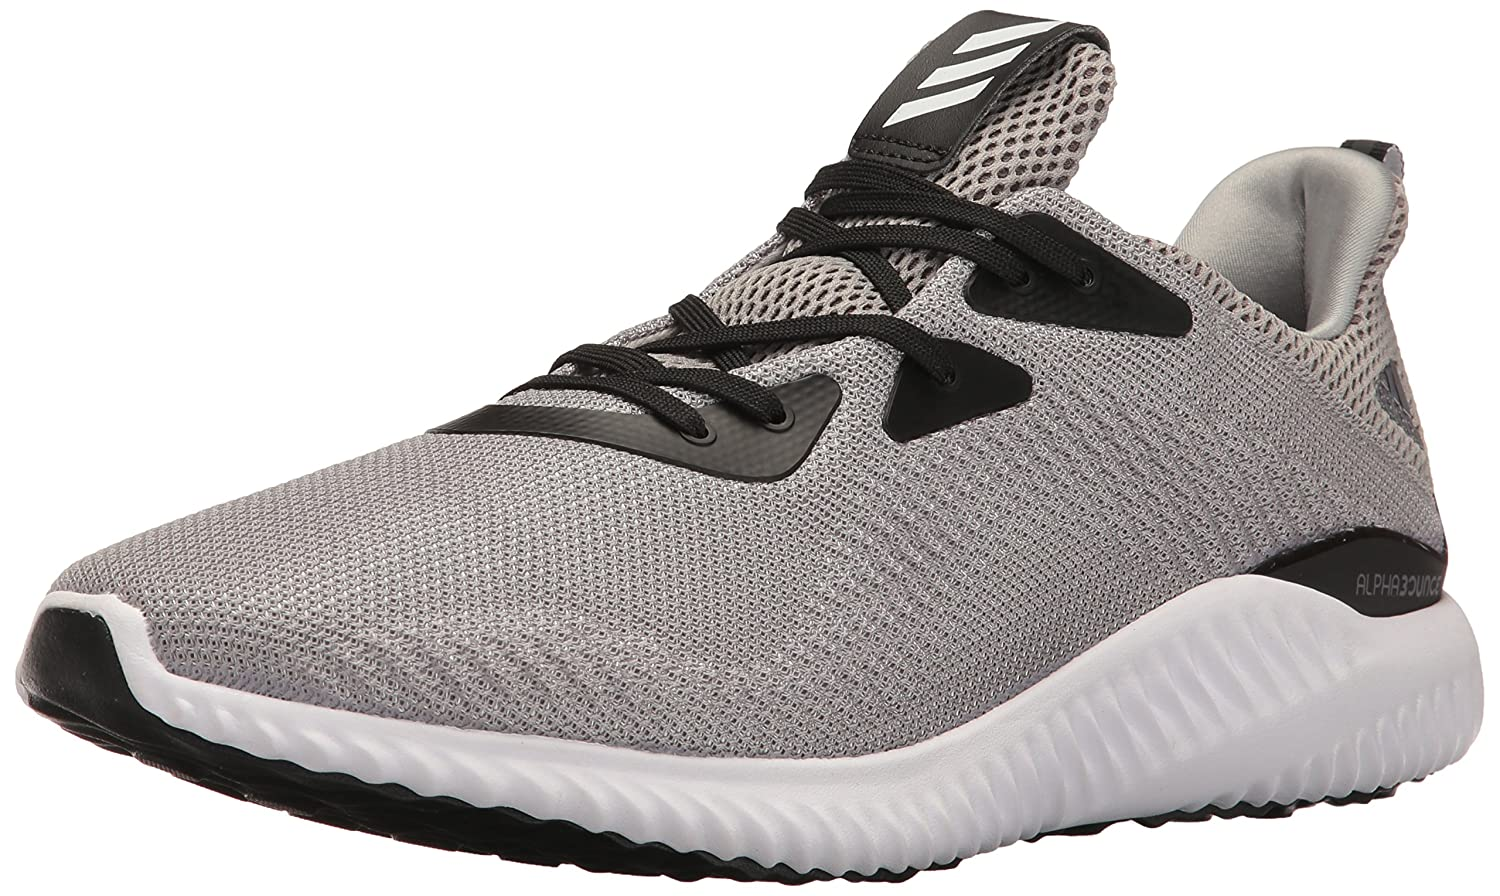 Medium gris Heather blanc noir 43 1 3 EU Adidas Alphabounce Toile Chaussure de Course